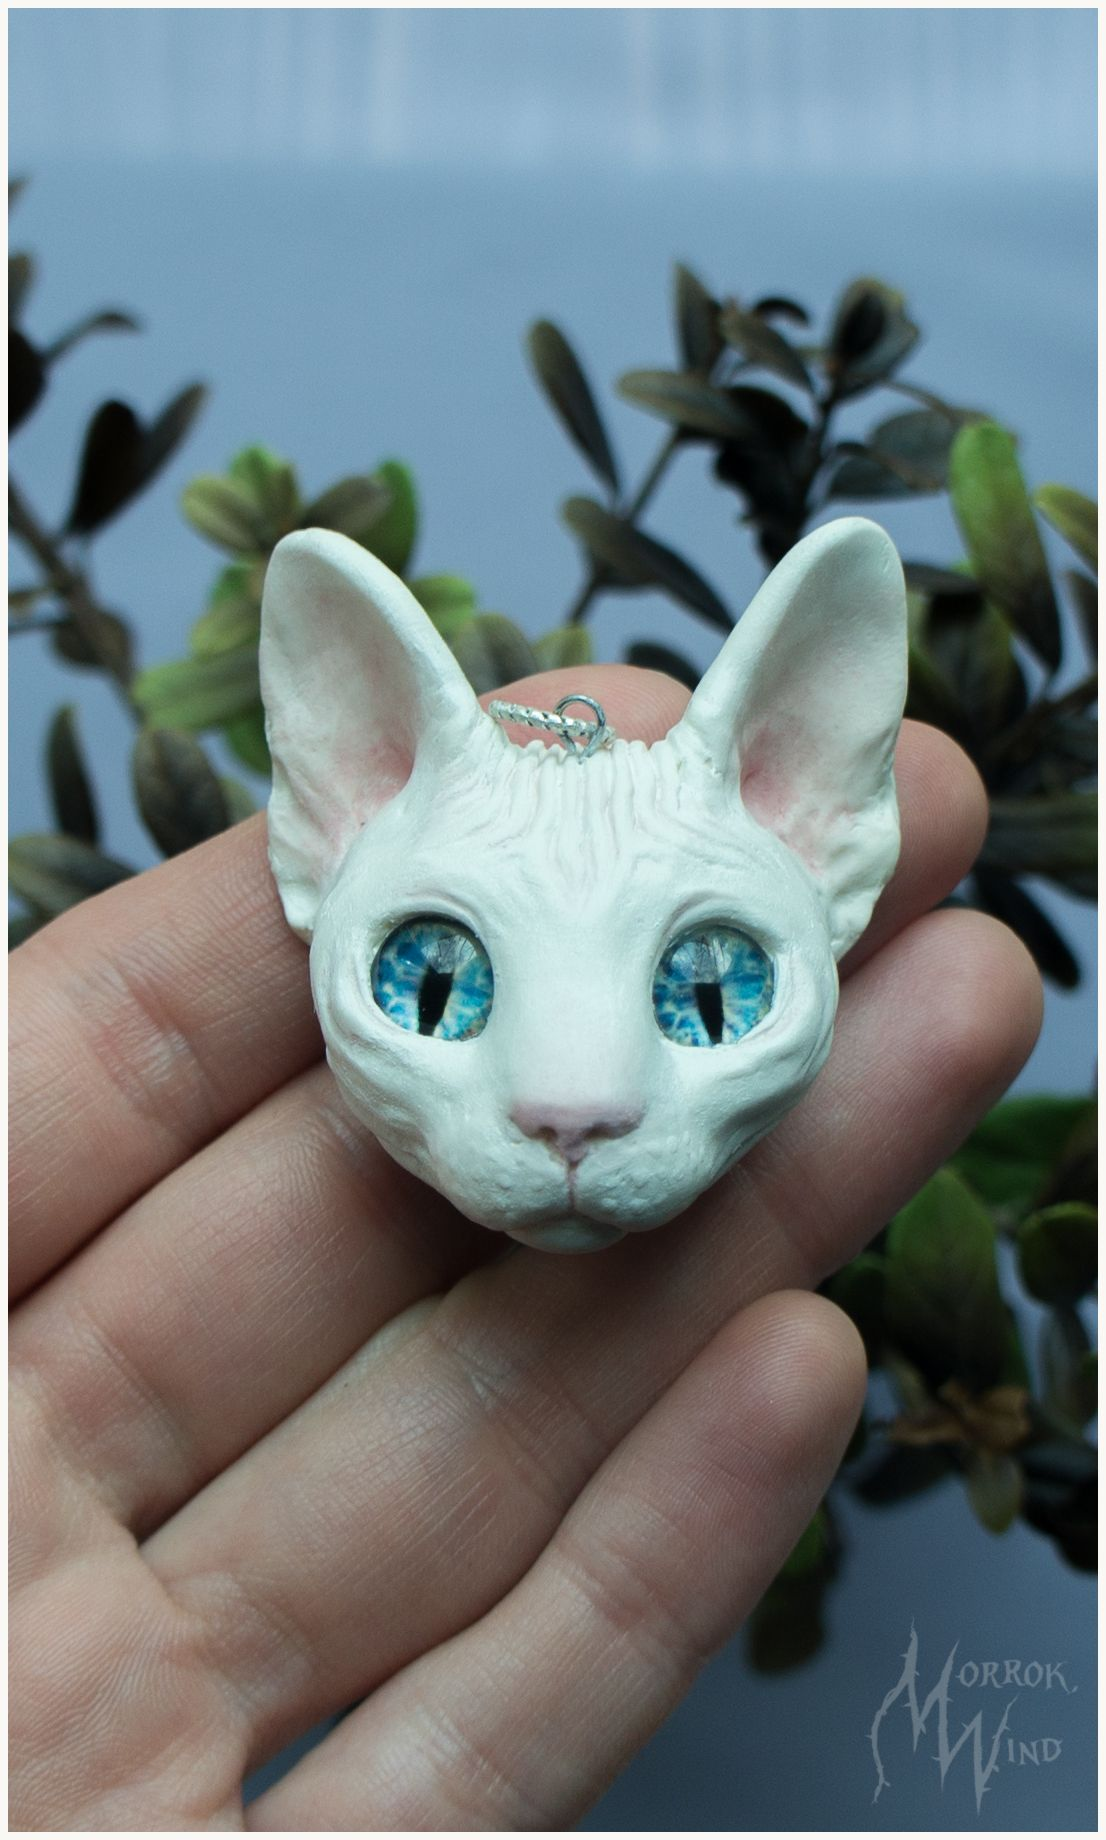 Pin by Cecilie Hansen on Котики in 2020 Sphinx cat